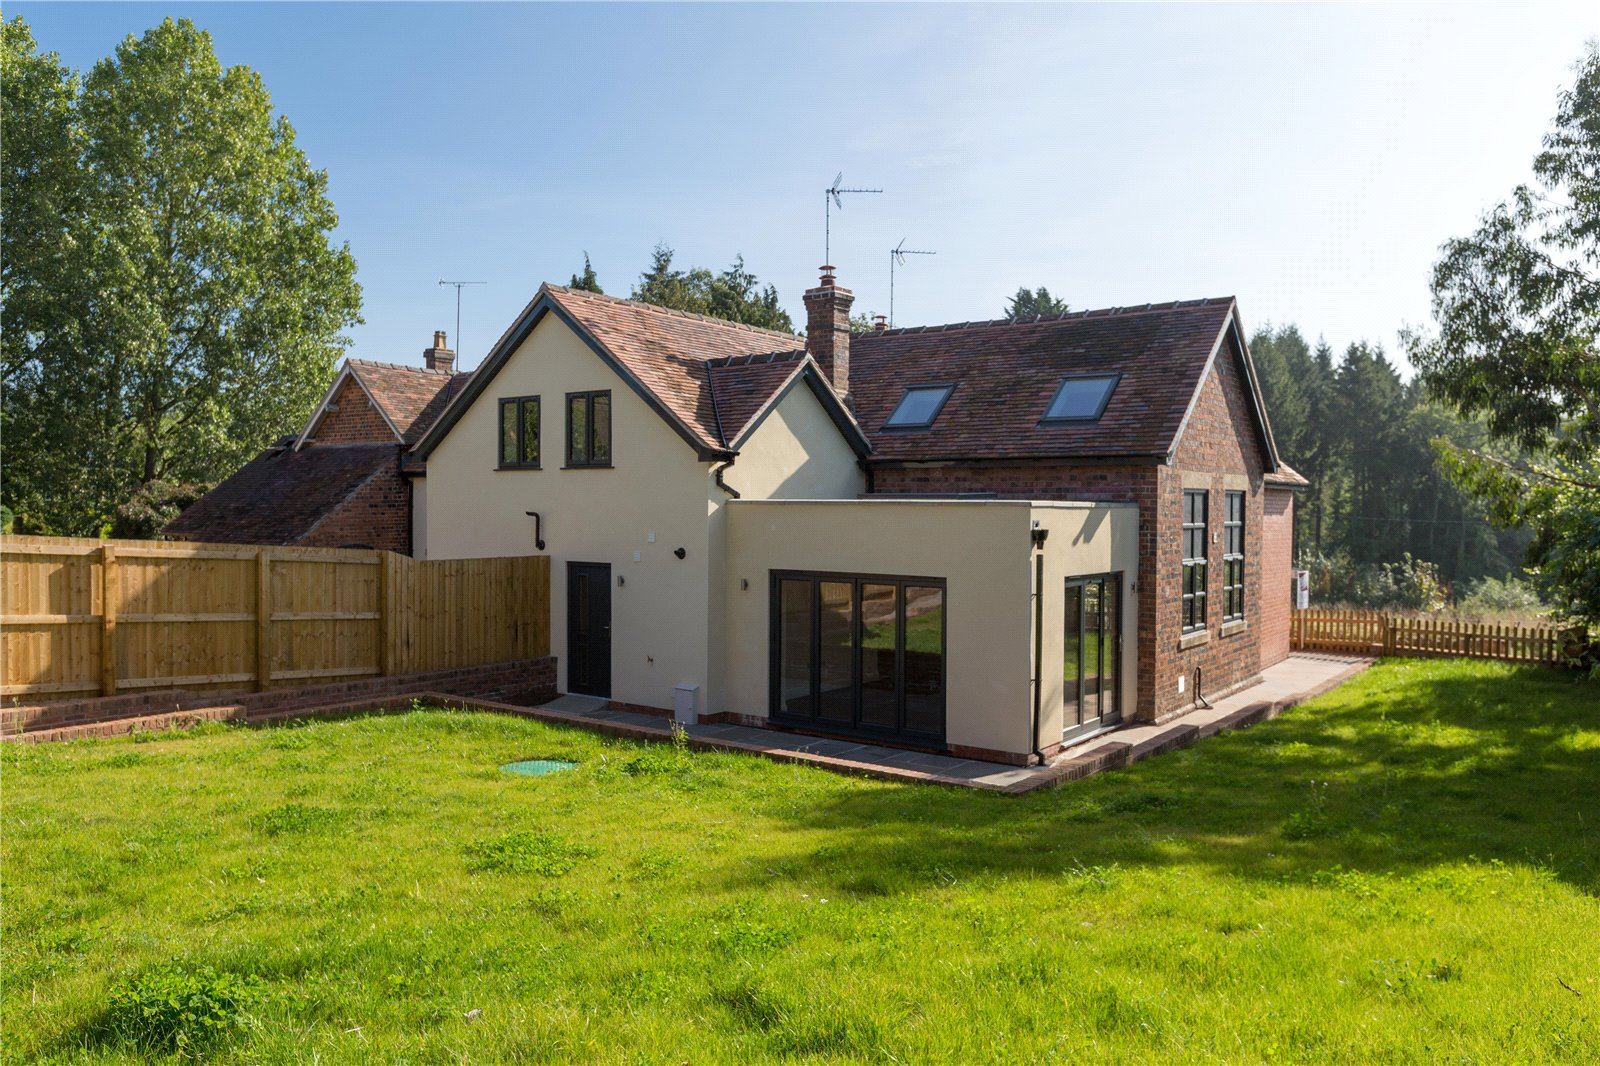 1, The Classroom House, Hopton Wafers, Kidderminster, DY14